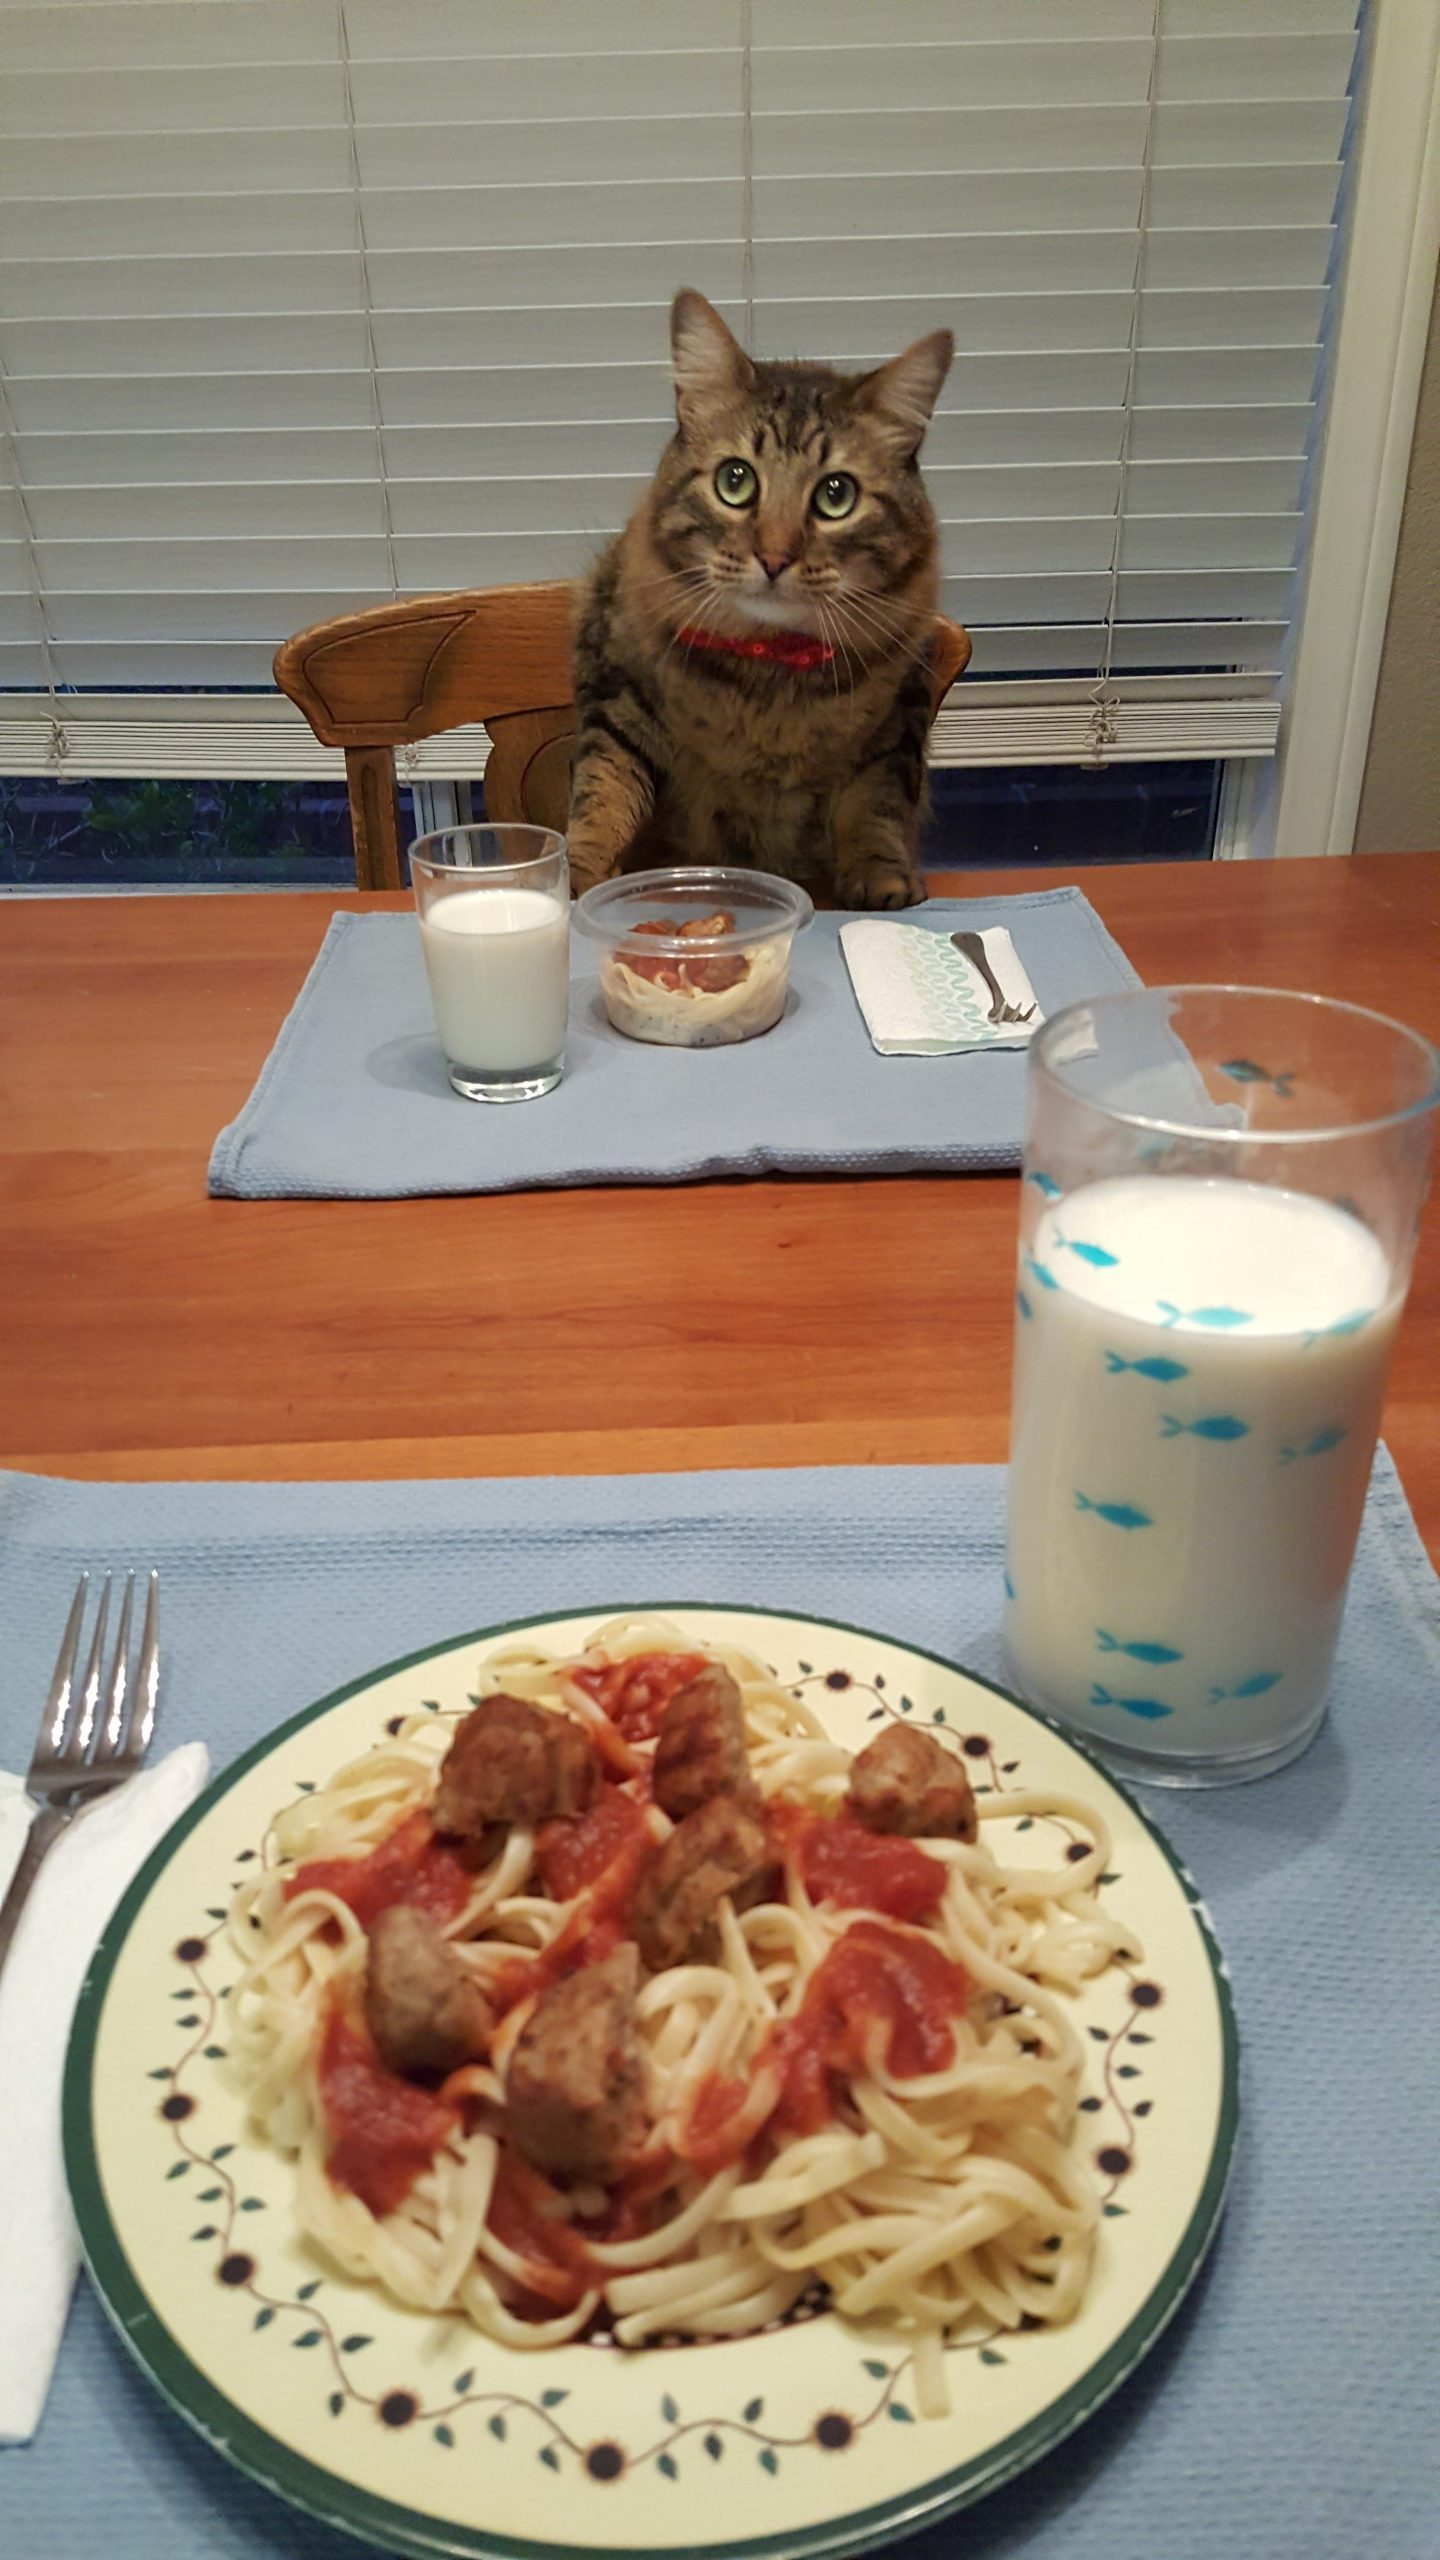 Cat sitting at dinner table with spaghetti and meatballs and a glass of milk